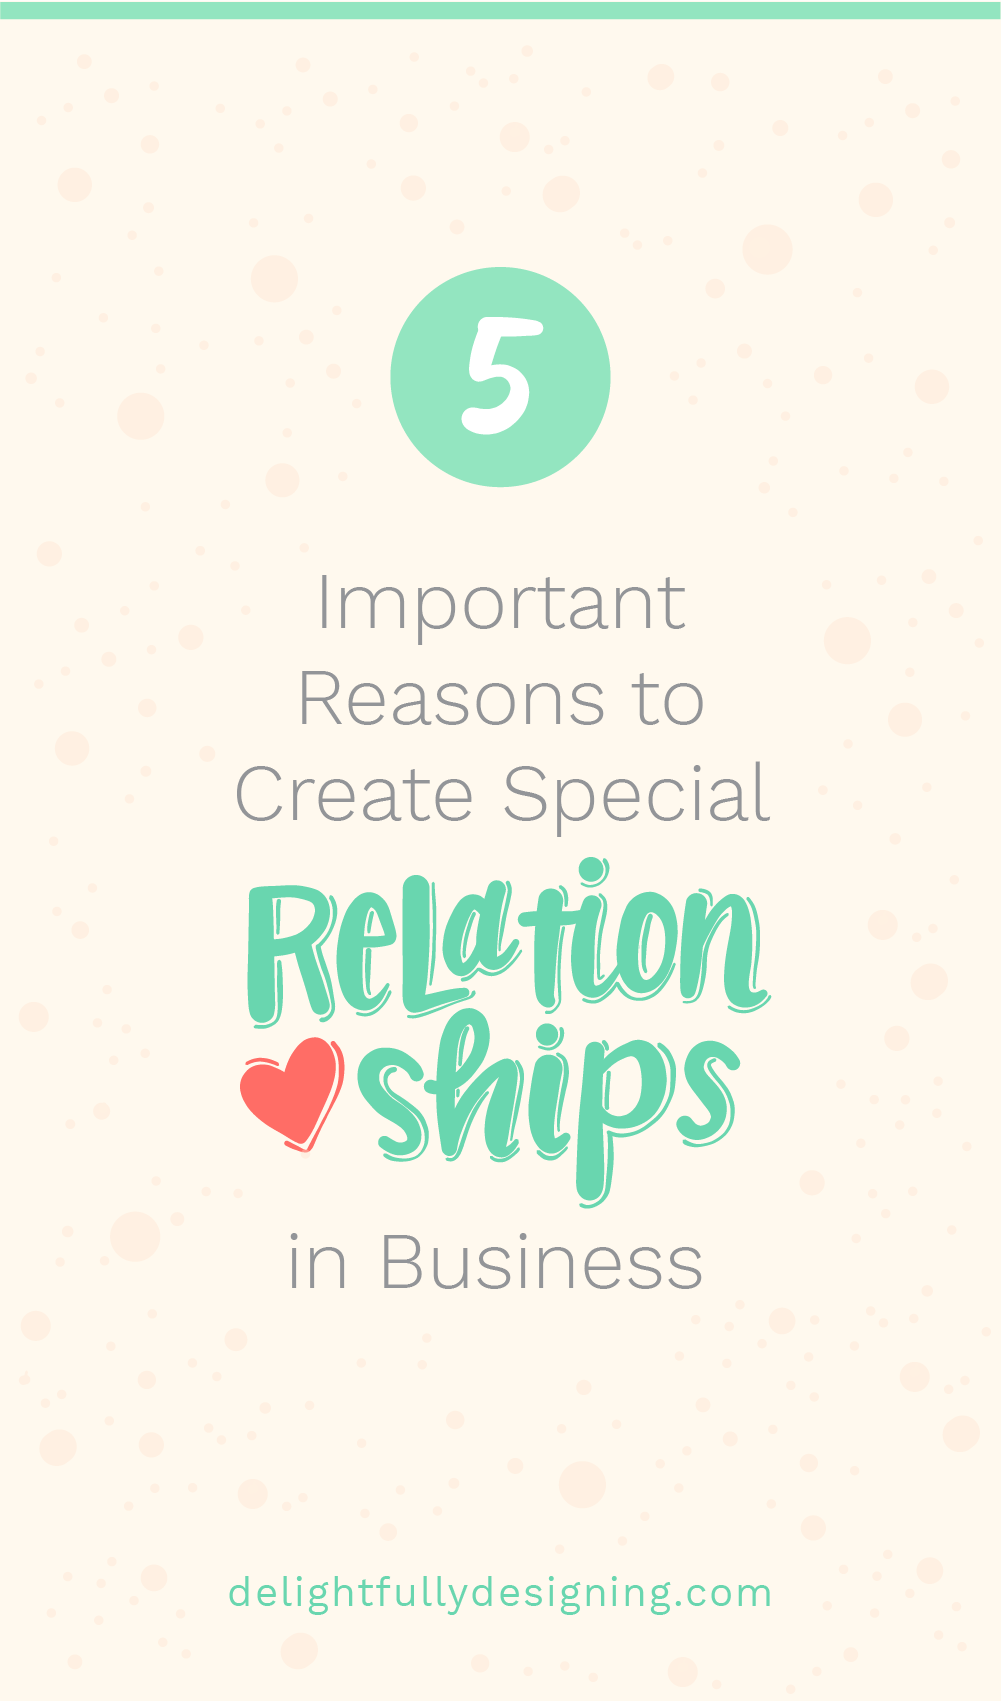 Learn 5 Important Reasons to Create and Nurture Relationships within your Business to grow your Brand